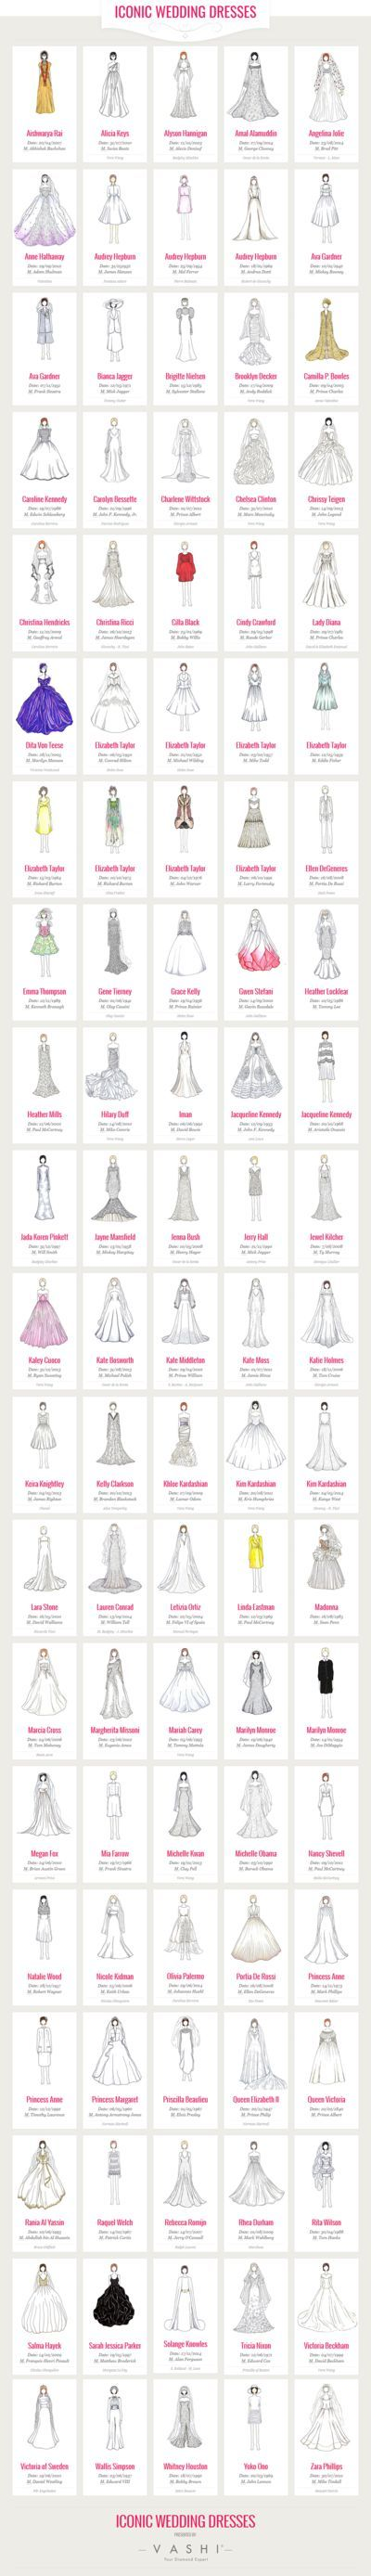 The 100 Most Iconic Wedding Dresses